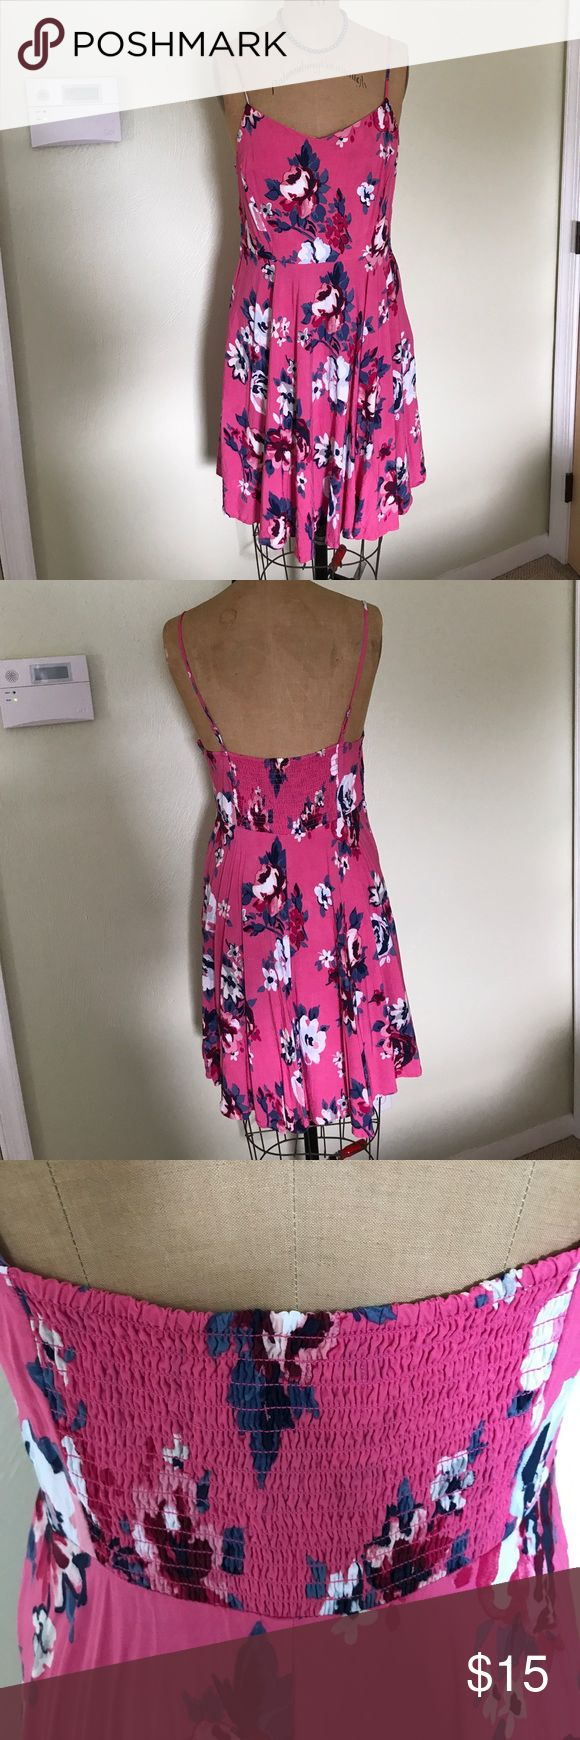 """Old Navy fit and flare cami dress Spring it on! Our fave Fit & Flare Cami dress is back in a big way, just in time for farmers' markets, outdoor cafes and other """"life is good"""" pursuits. Fitted at top and waist, with a flared skirt.  Dress hits above knee. Adjustable spaghetti straps. V-neck. Fit & Flare silhouette has a fitted bodice, defined waist and flared skirt. Soft. drapey rayon poplin. Old Navy Dresses"""